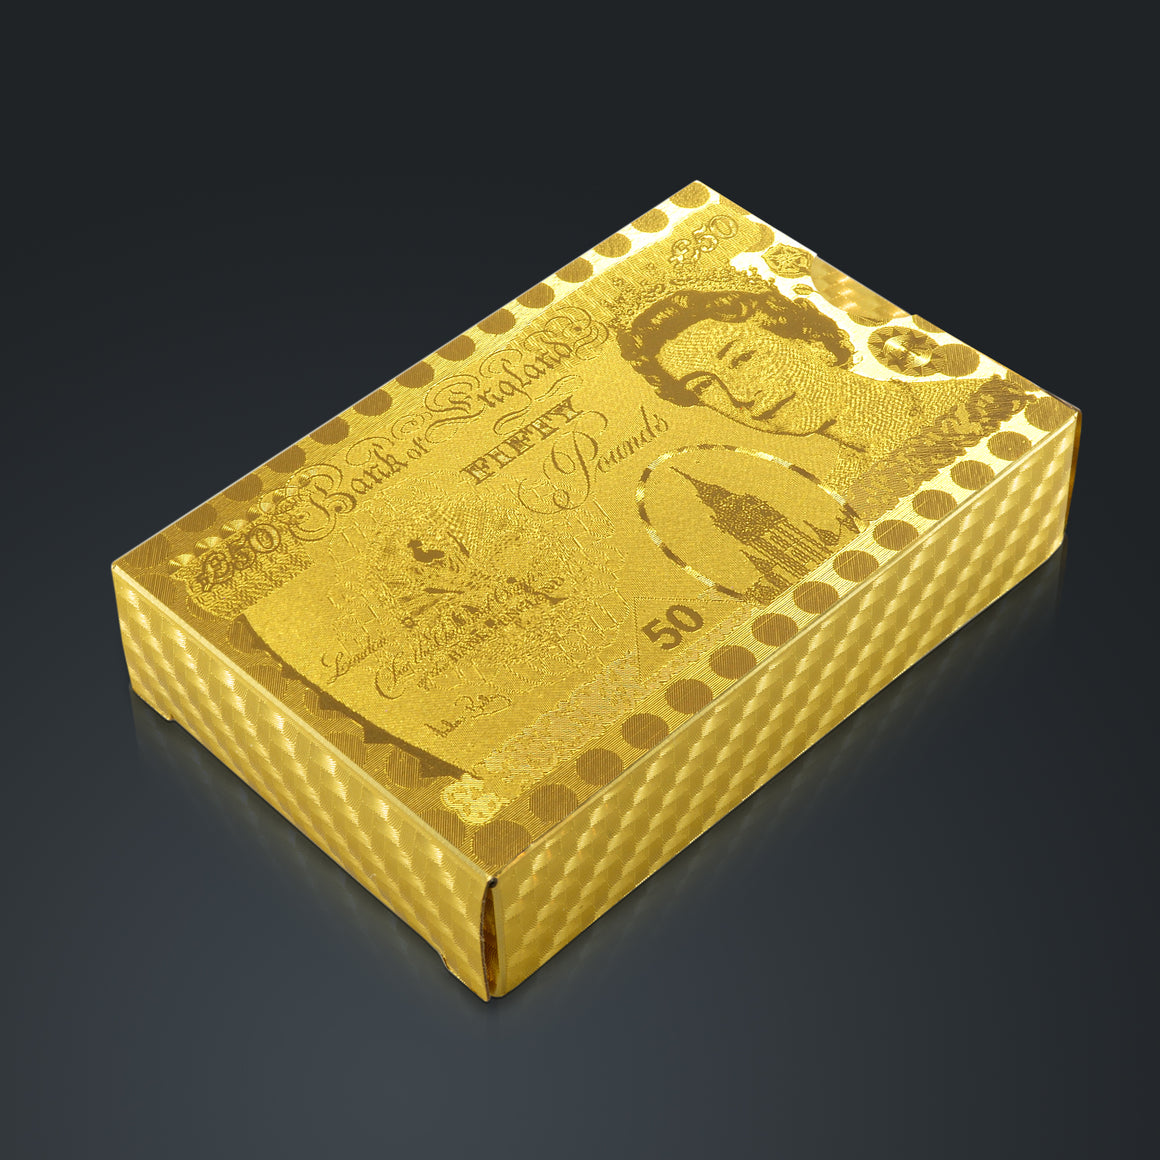 24 K GOLD PLATED PLAYING CARDS Gold Pounds $50 Pattern